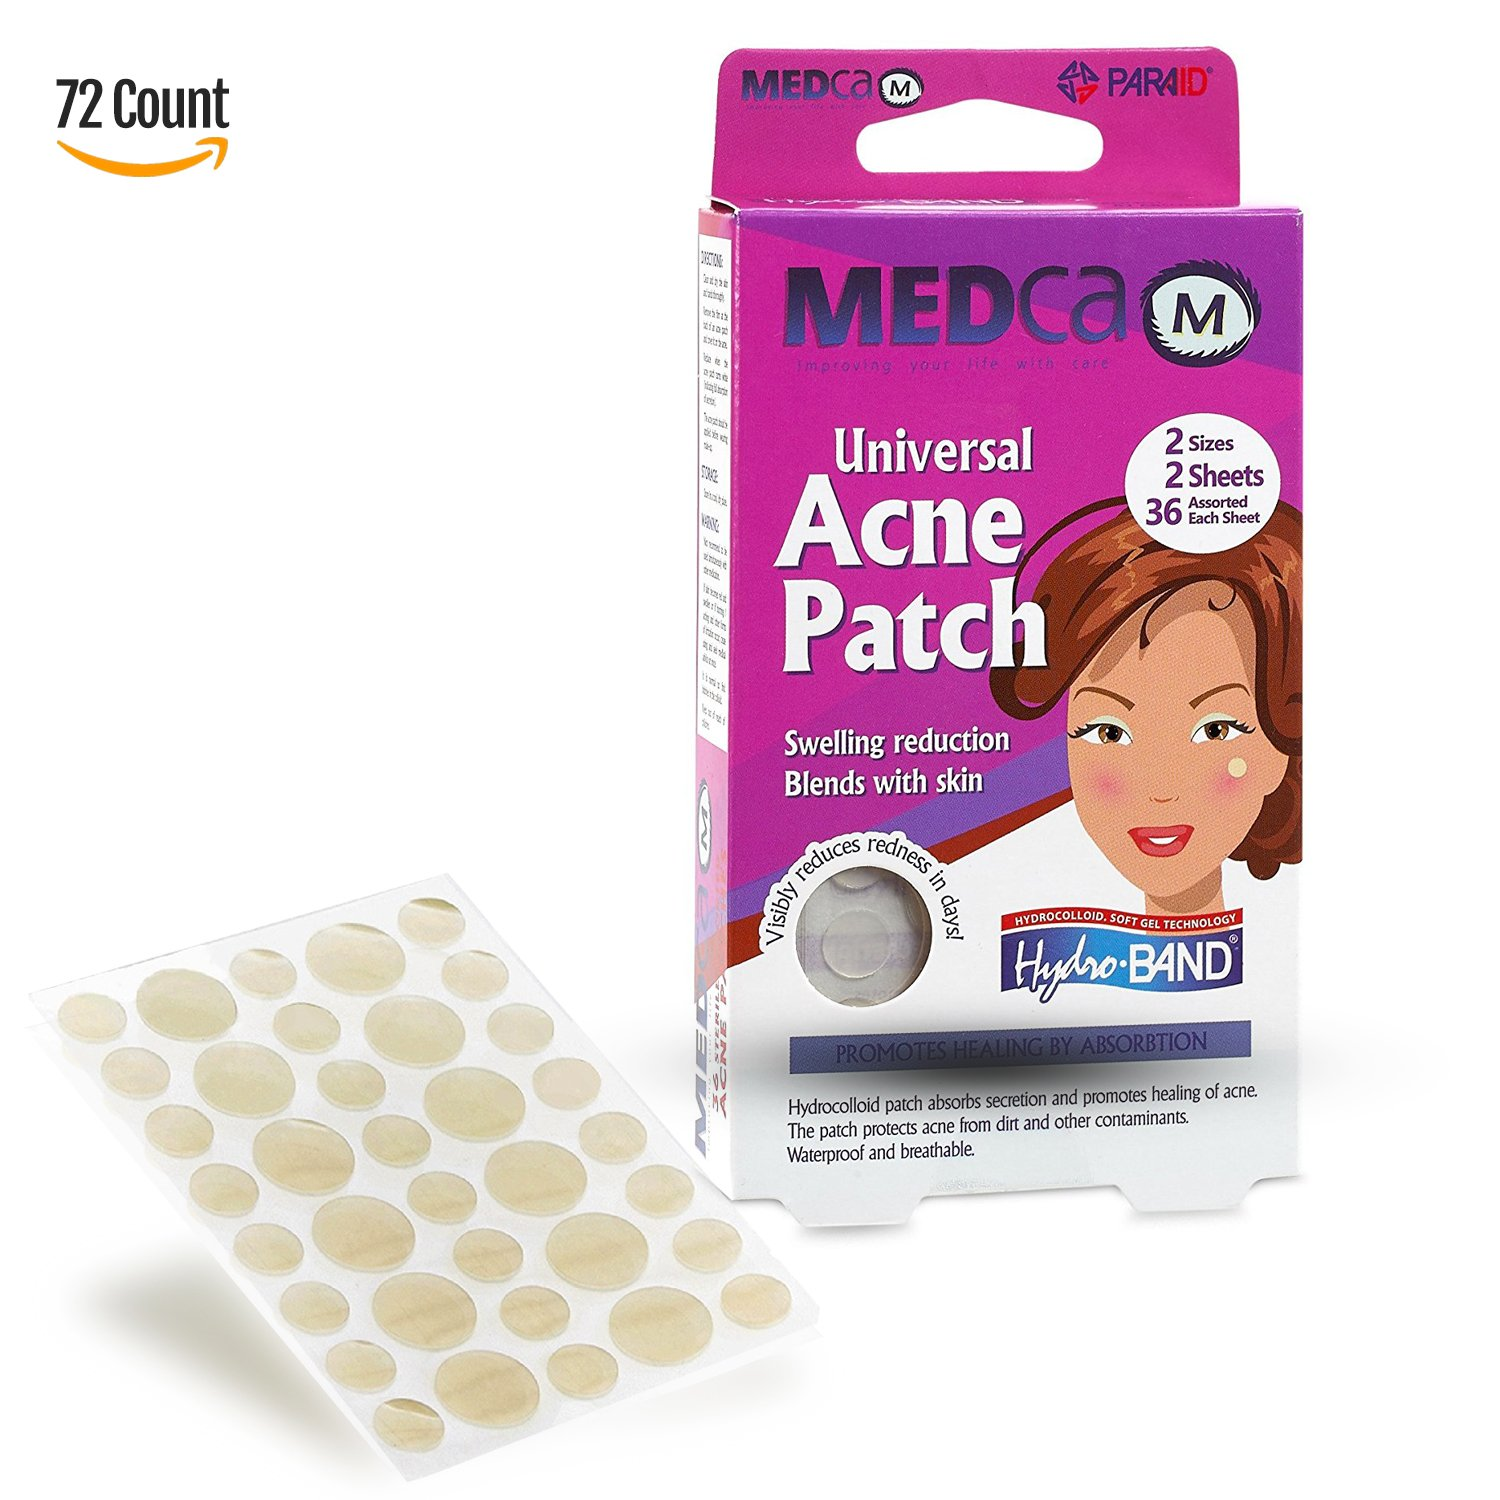 Acne Spot Dots - 72 Count, Hydrocolloid Acne Pimple Care Patches Absorbing Spot Dots Round Blemish Covers MEDca PA-5010